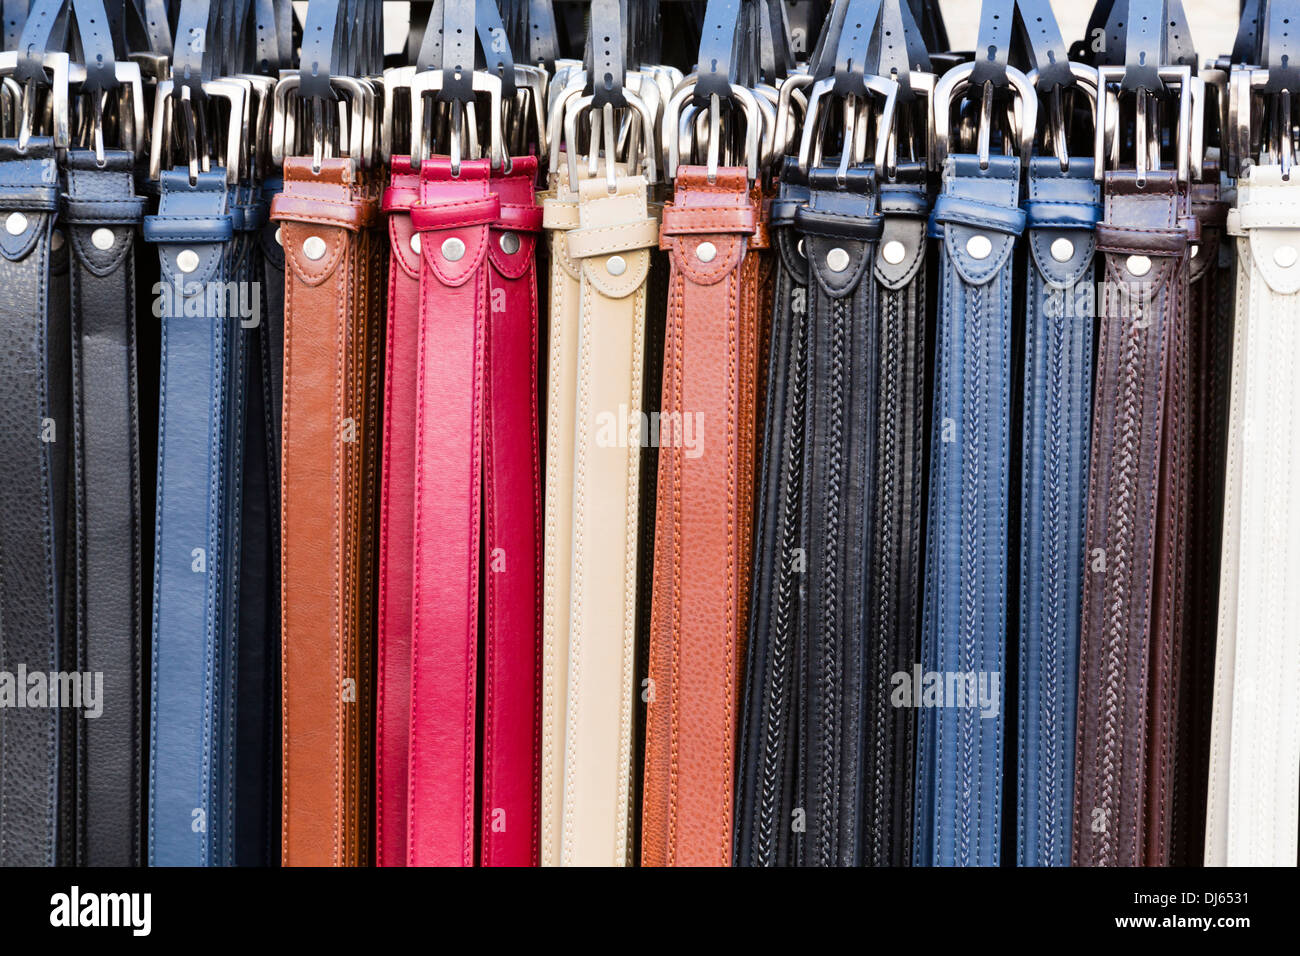 Shop display of leather belts, St Andrews Street, Limassol, Cyprus. - Stock Image